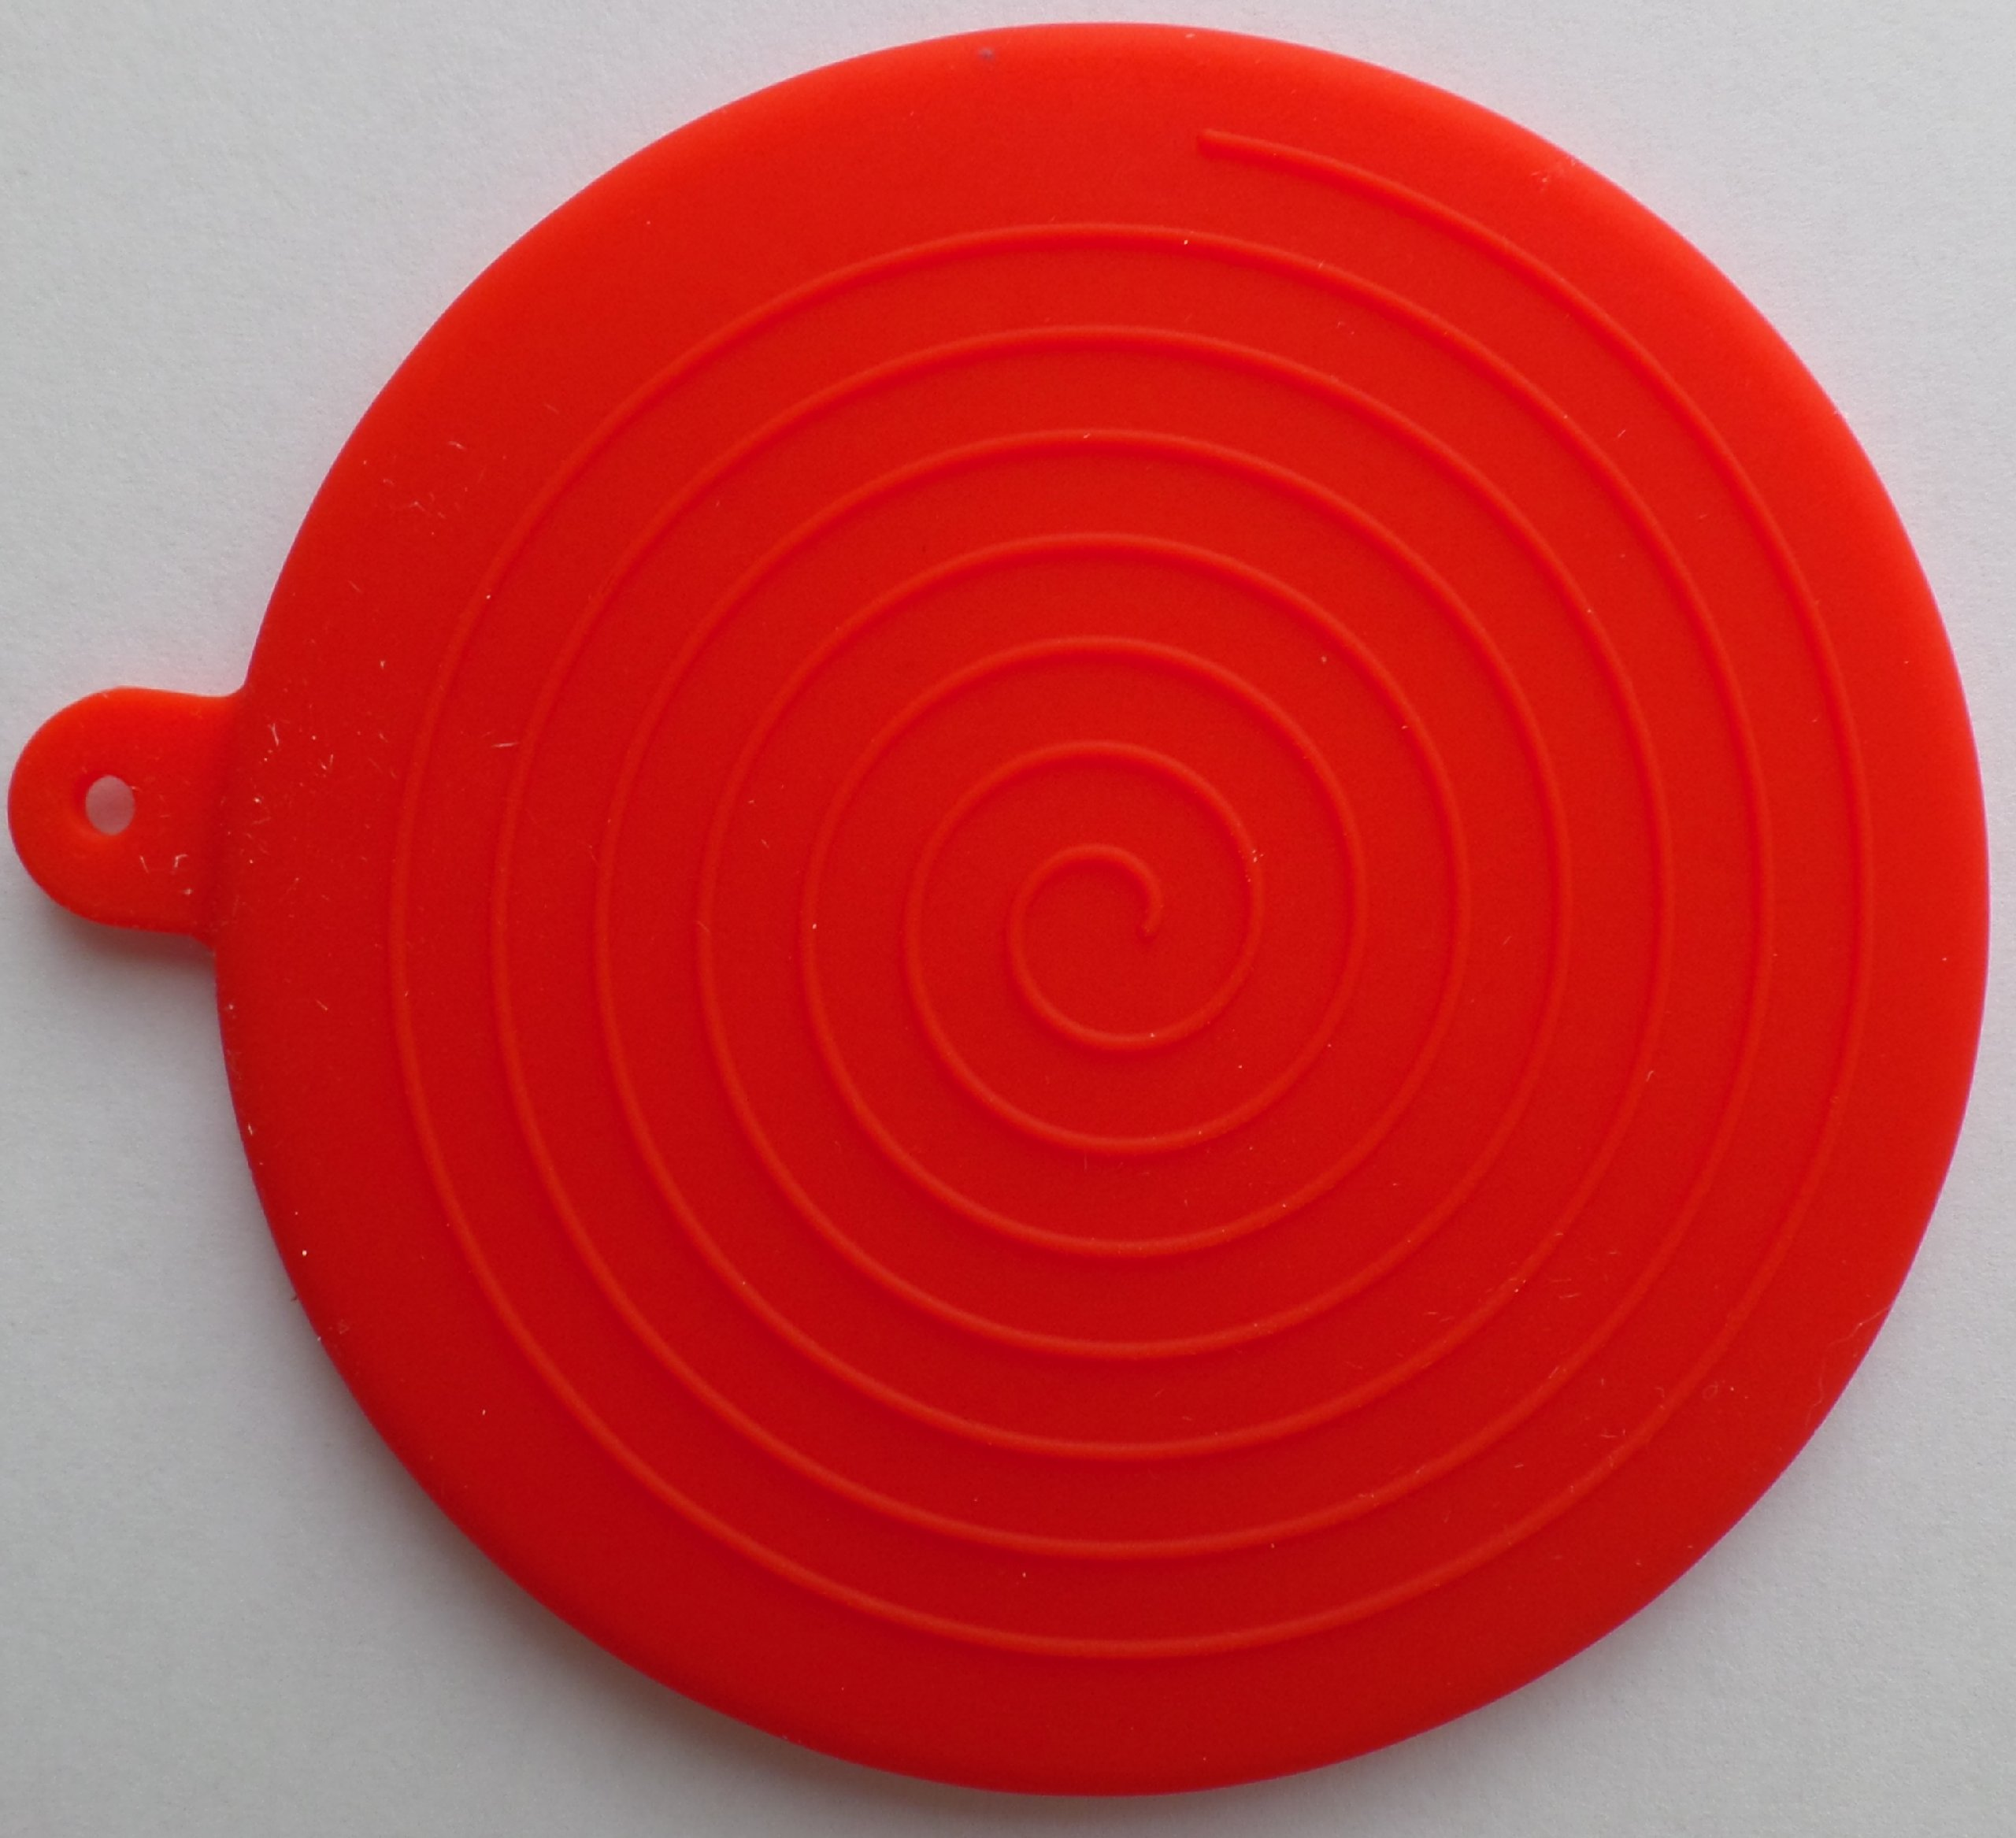 The Handy House Travel Cap for AeroPress Coffee Maker, Red by The Handy House (Image #2)